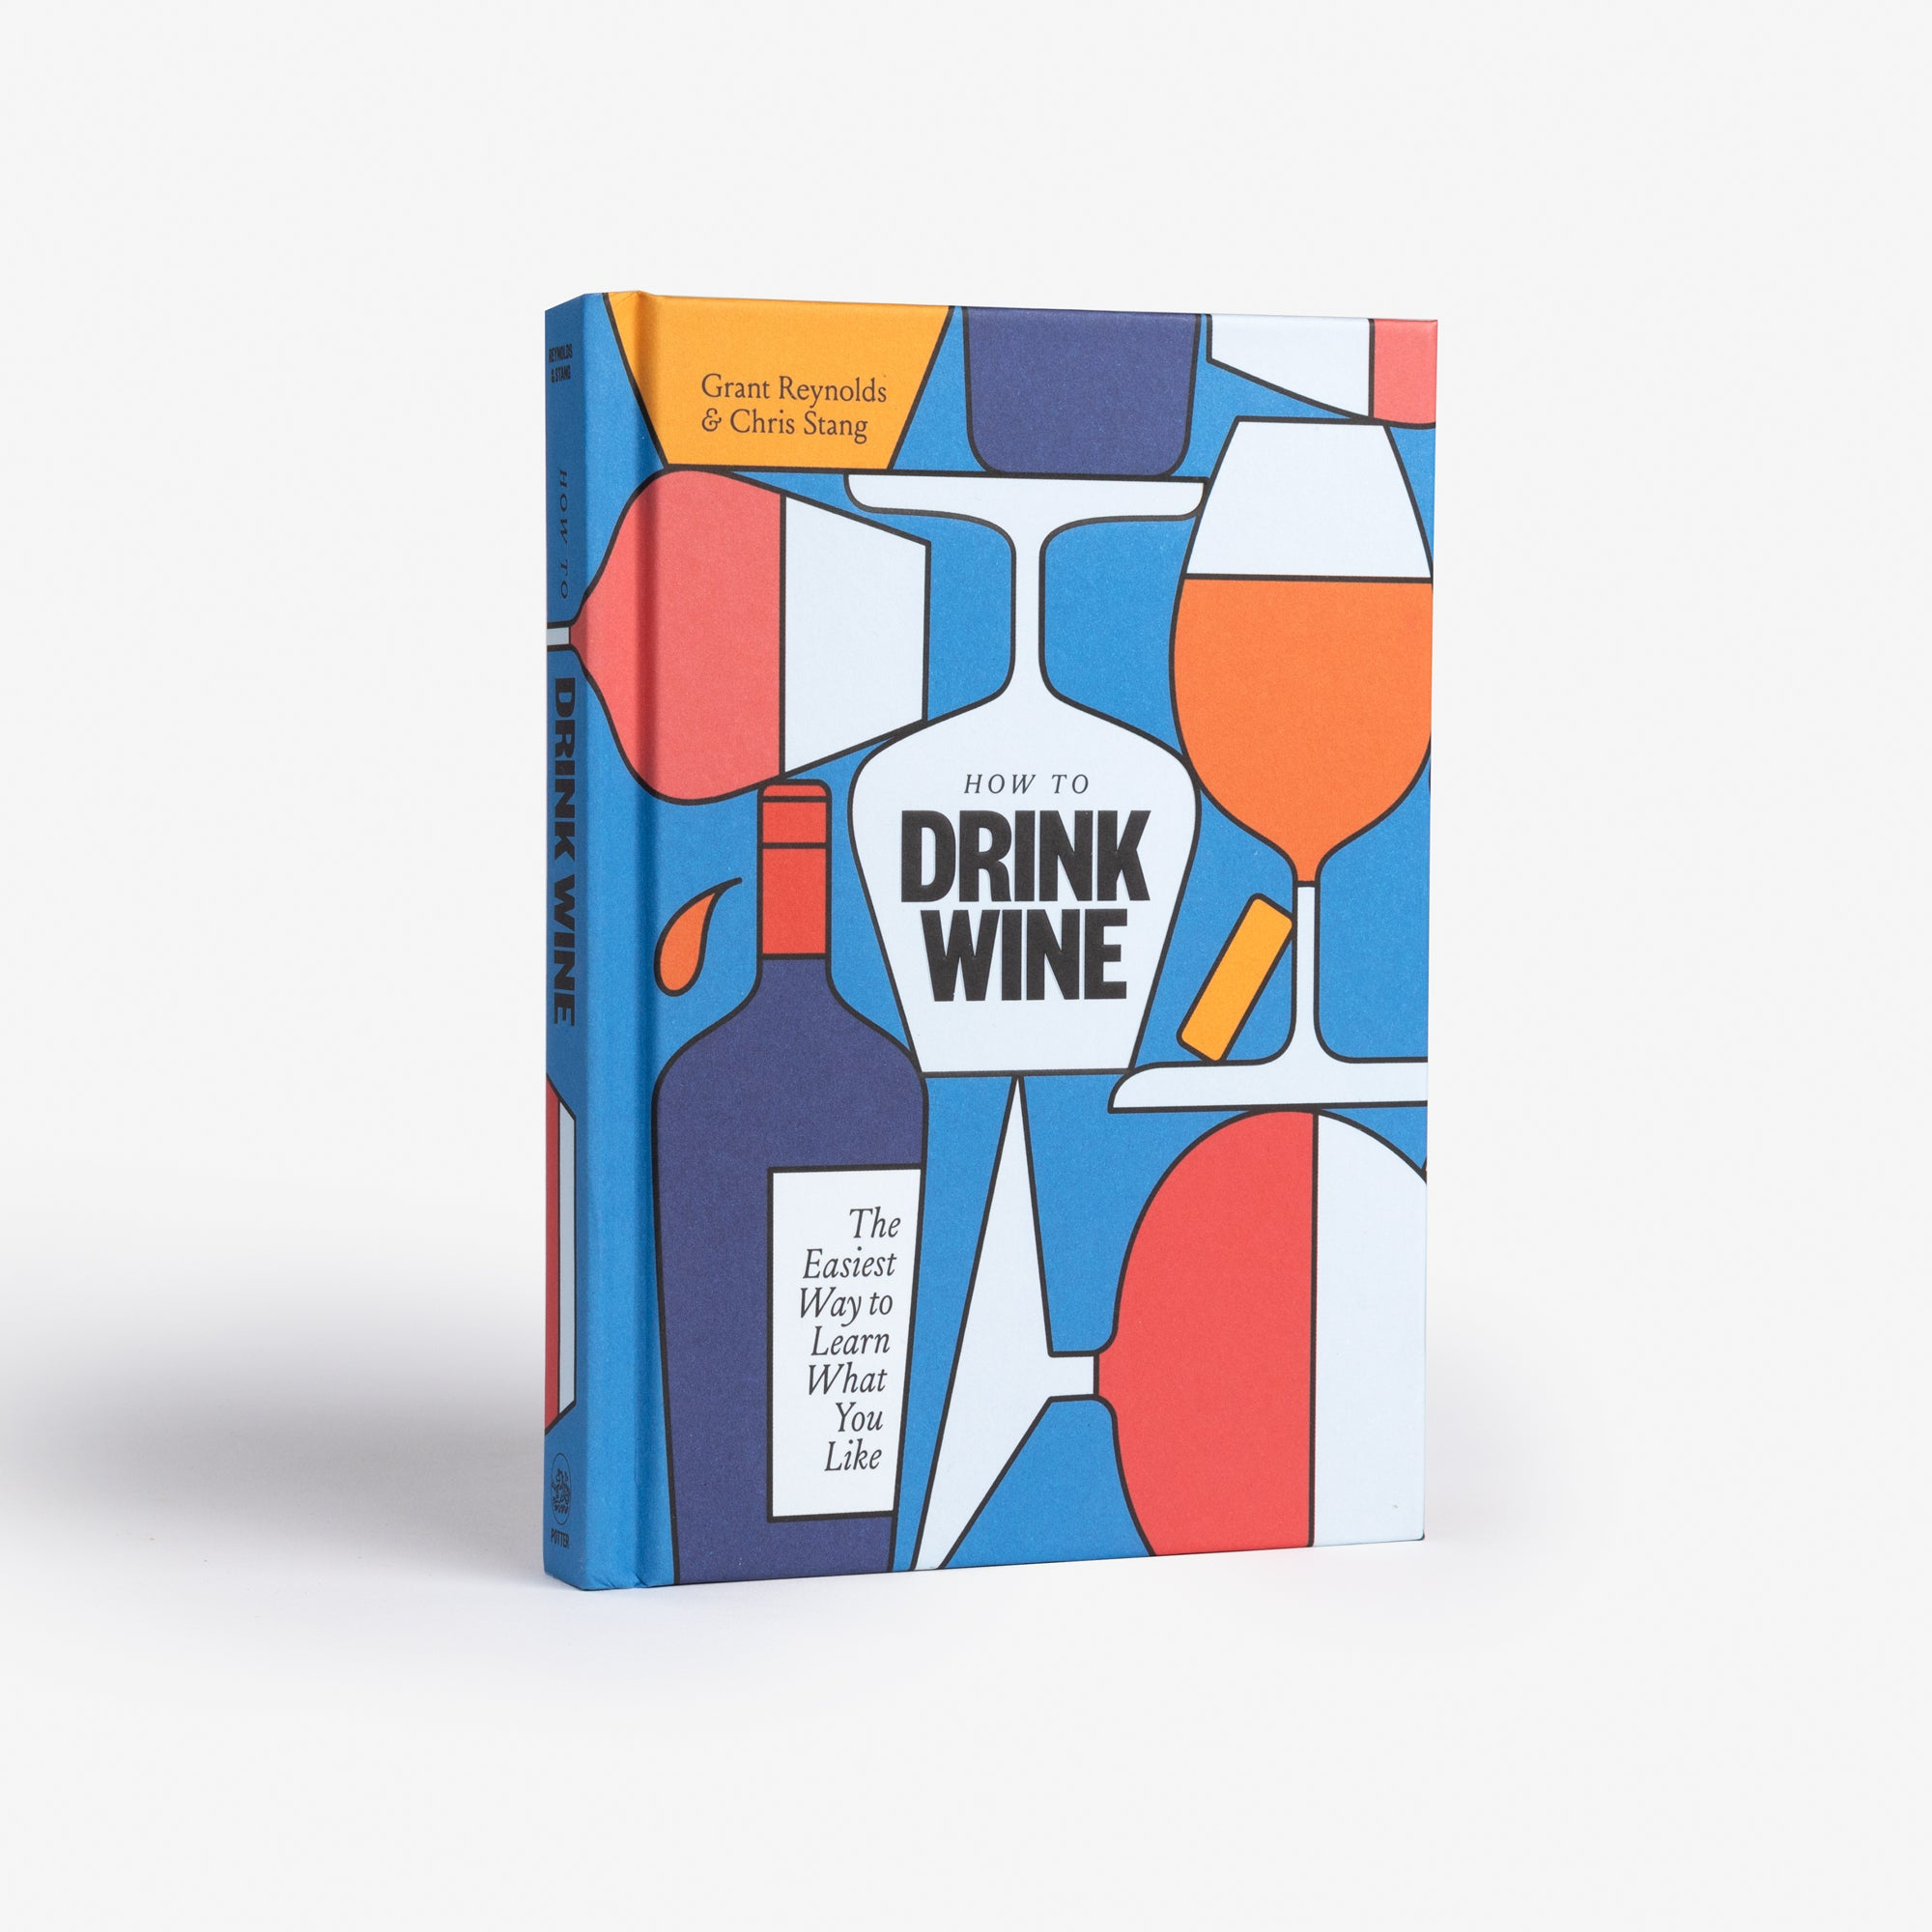 THE BOOK: How To Drink Wine